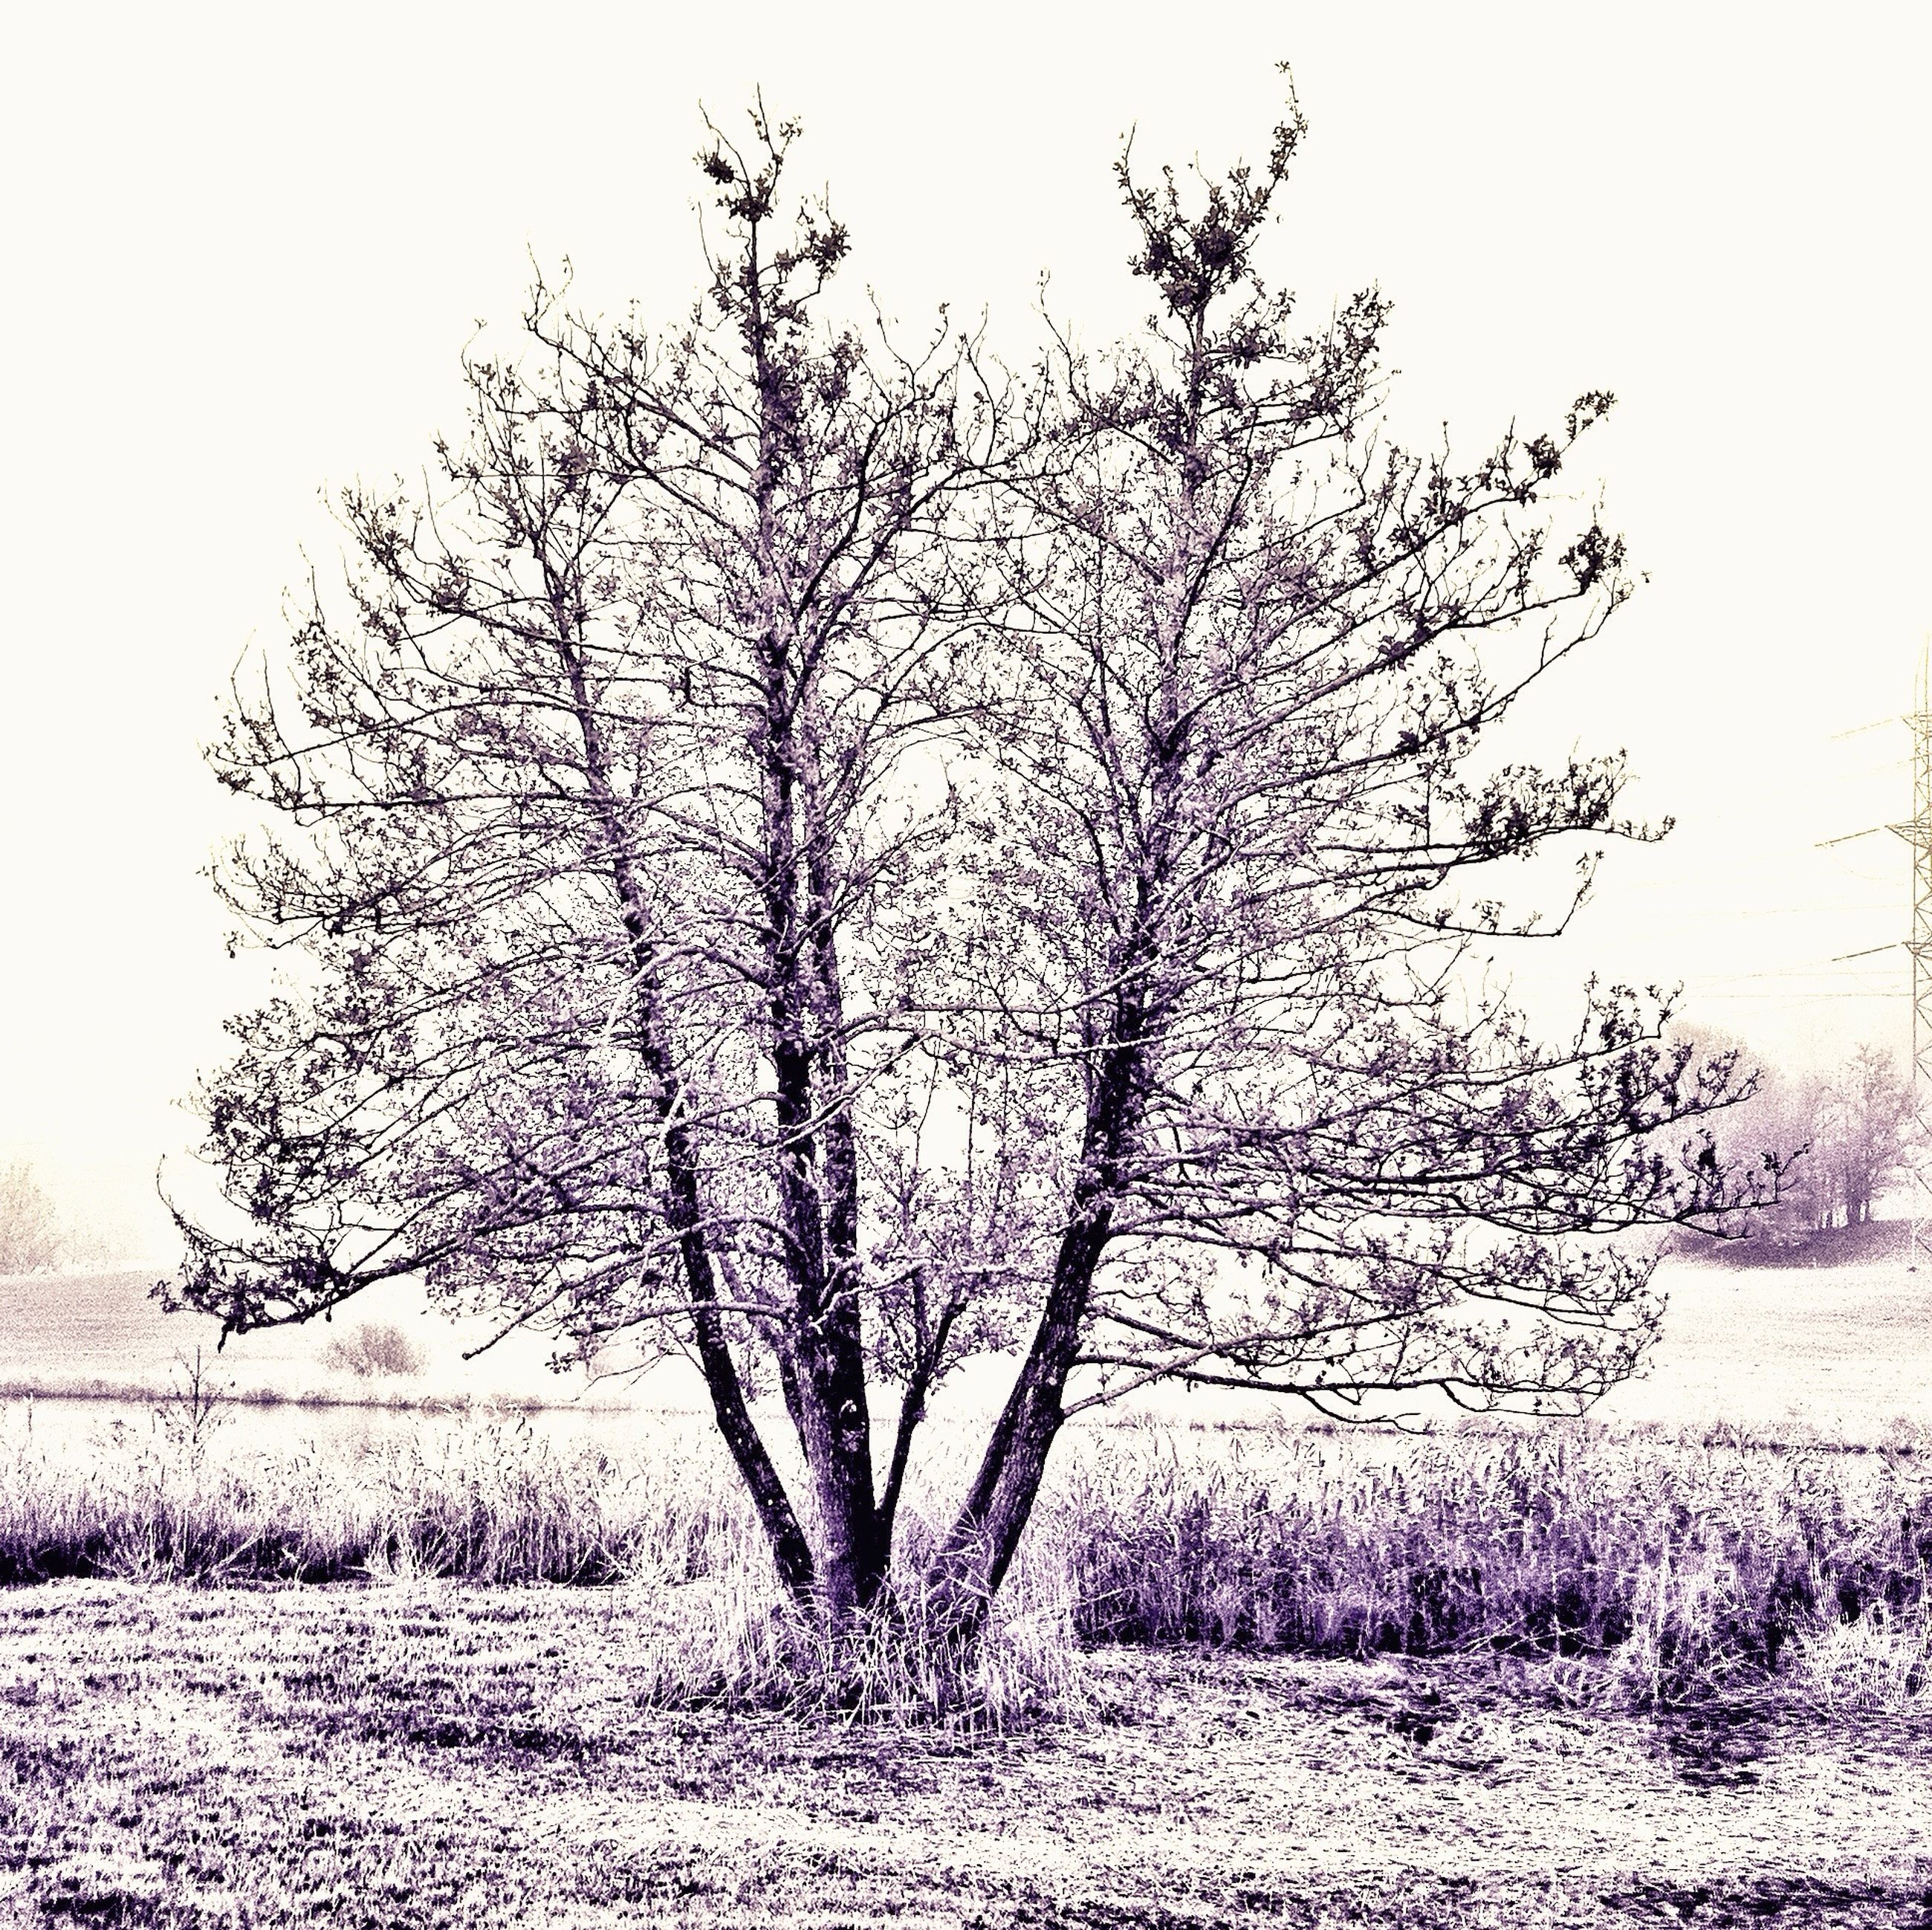 bare tree, tree, branch, field, nature, tranquility, clear sky, dead plant, landscape, growth, tranquil scene, day, single tree, tree trunk, beauty in nature, outdoors, sky, no people, grass, plant